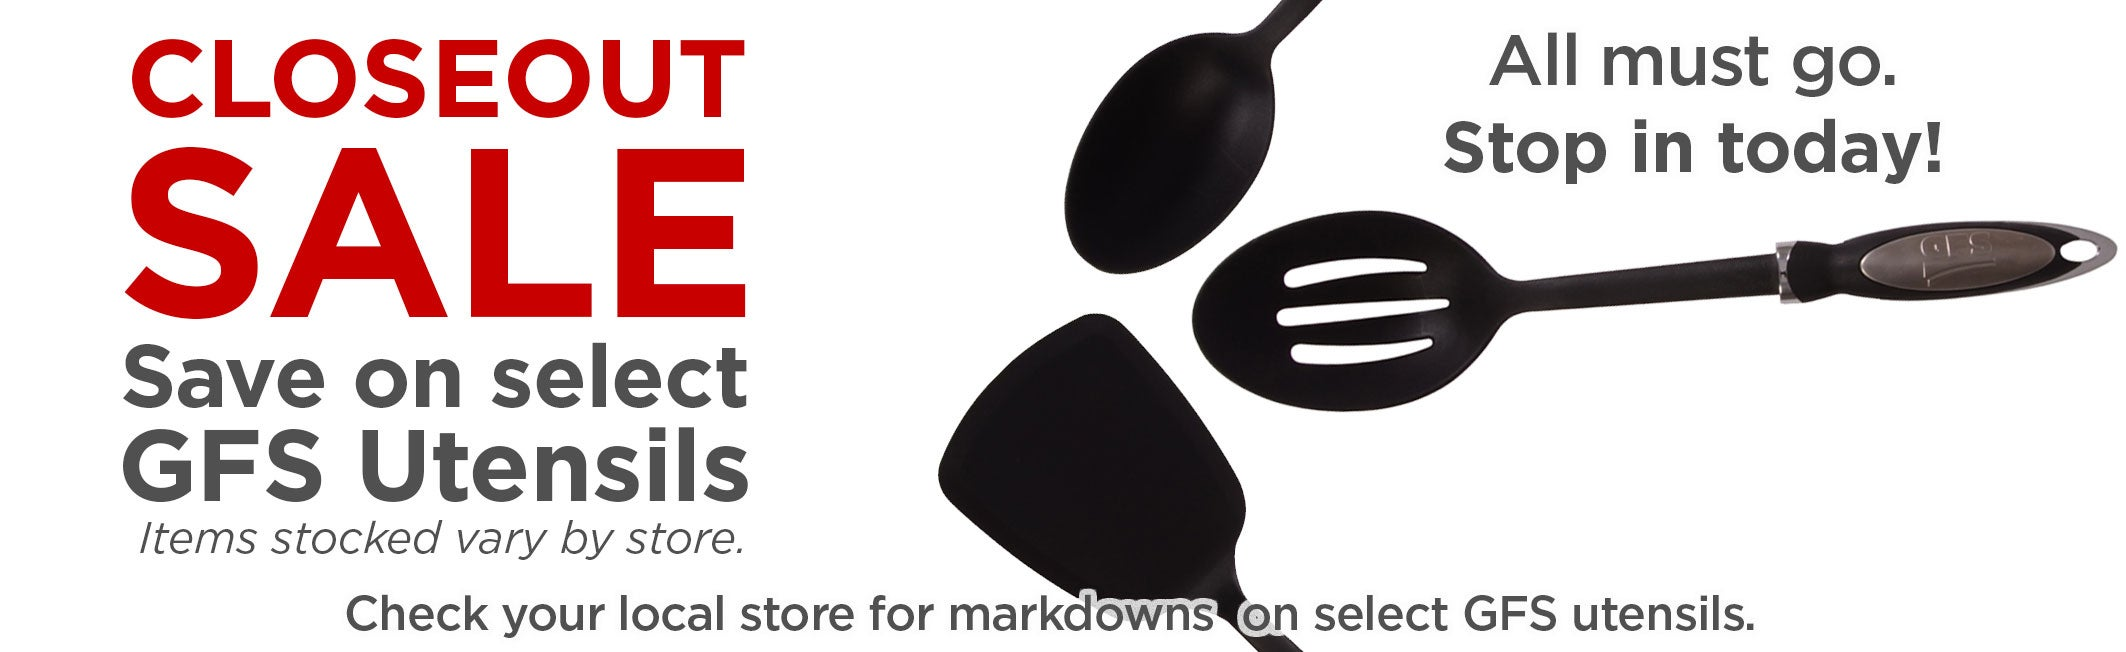 Closeout Sale on select GFS Utensils